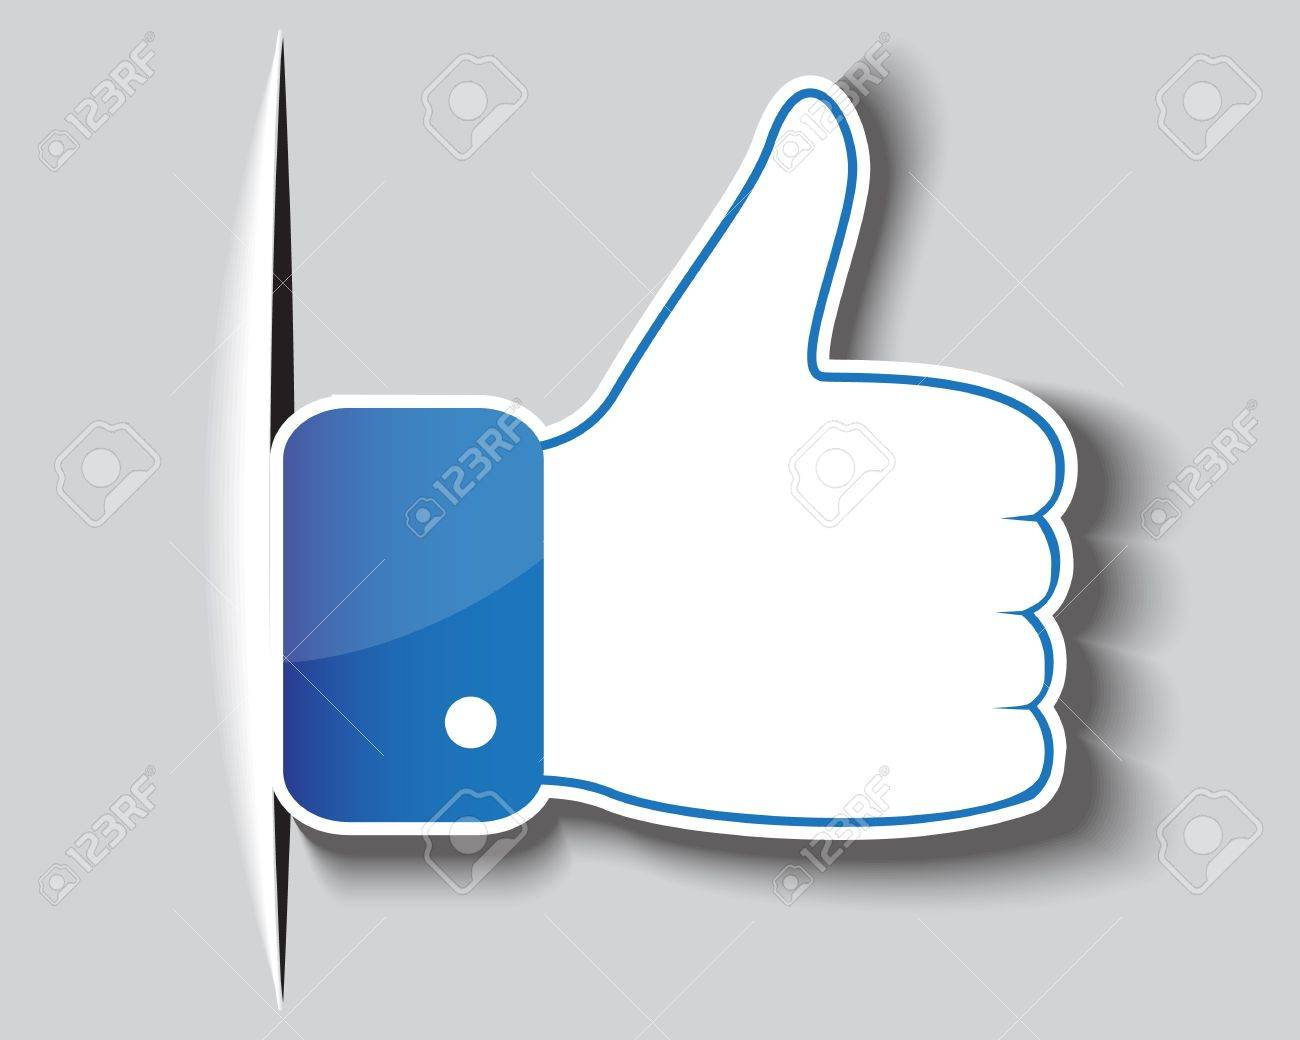 Paper approved symbol of a hand with a clenched fist and protruding thumb Stock Vector - 17140601